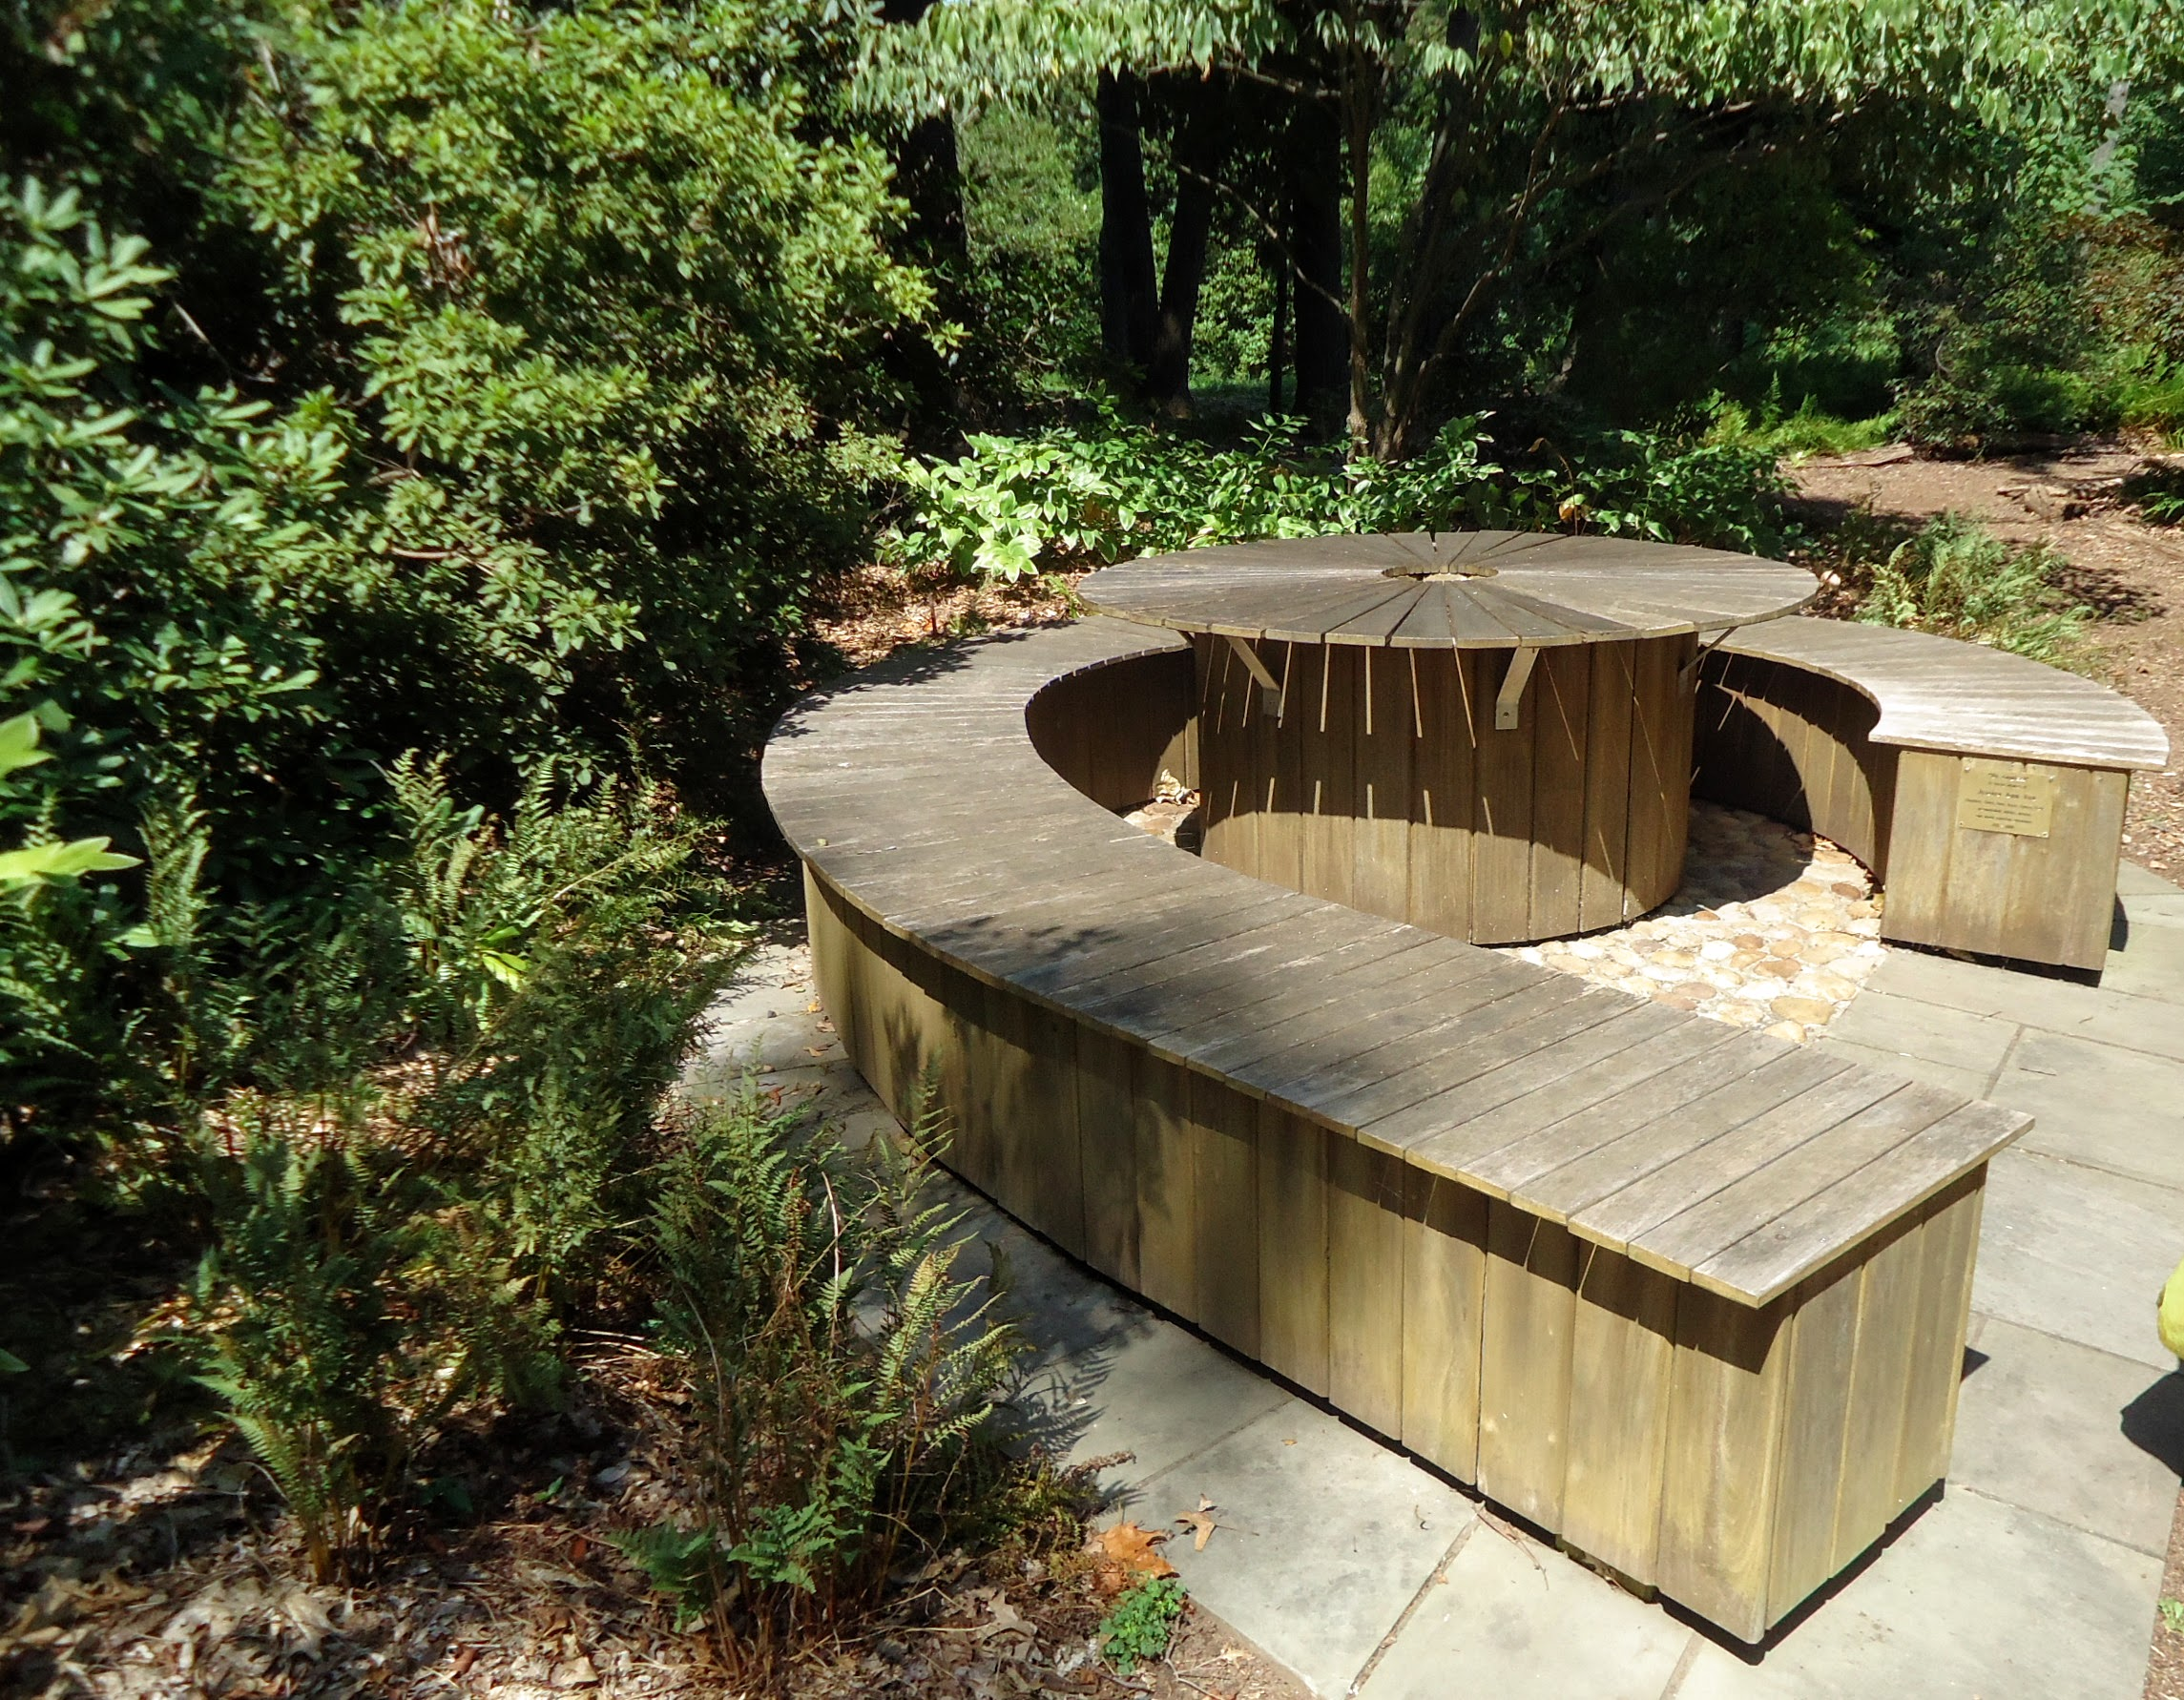 File:Rutgers Gardens in New Brunswick New Jersey bench Image Number ...